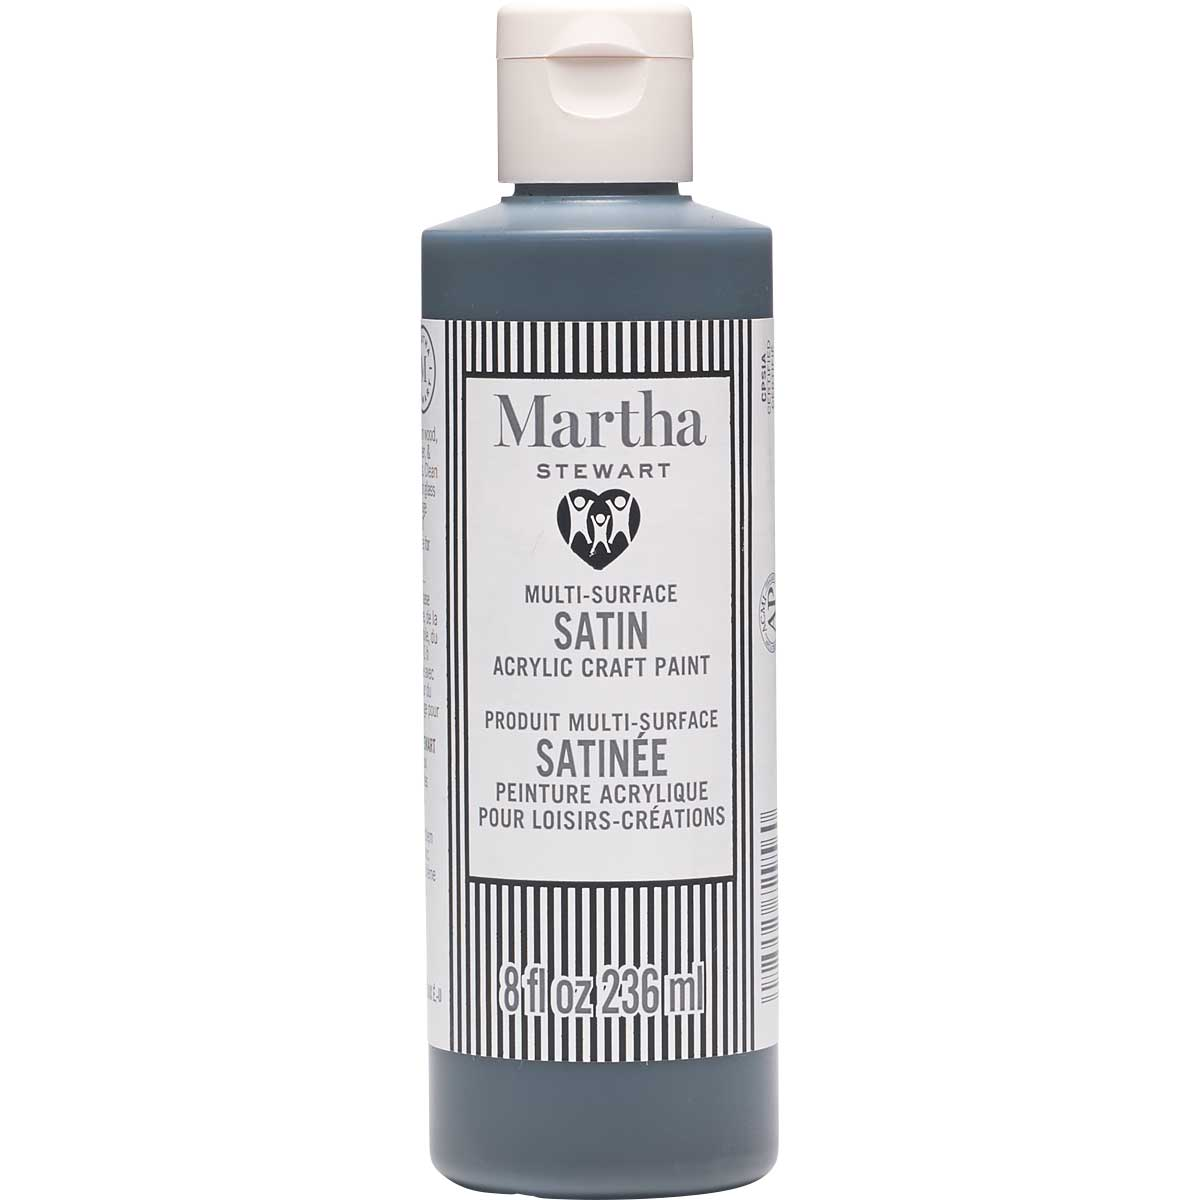 Martha Stewart® 8oz Multi-Surface Satin Acrylic Craft Paint - Black Belt